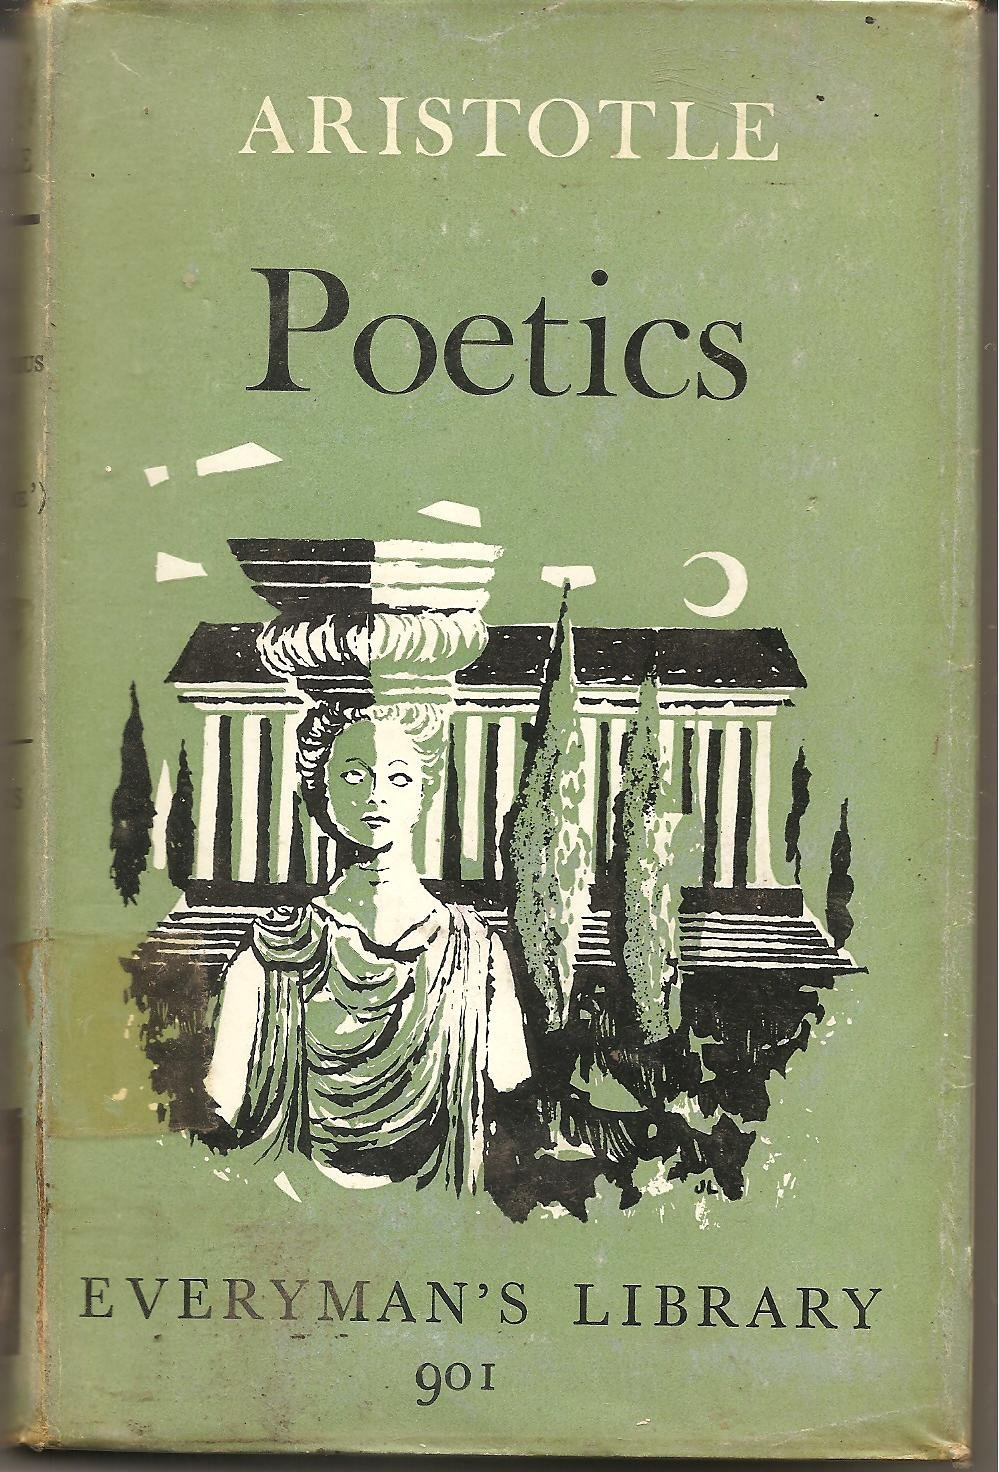 a literary analysis of the poetics by aristotle Aimed at deepening our understanding of the poetics, this collection places aristotle's analysis of tragedy in its larger philosophical context in these twenty-one essays, philosophers and classicists explore the corpus of aristotle's work in order to link the poetics to the rest of his views on psychology and on history, ethics, and politics.